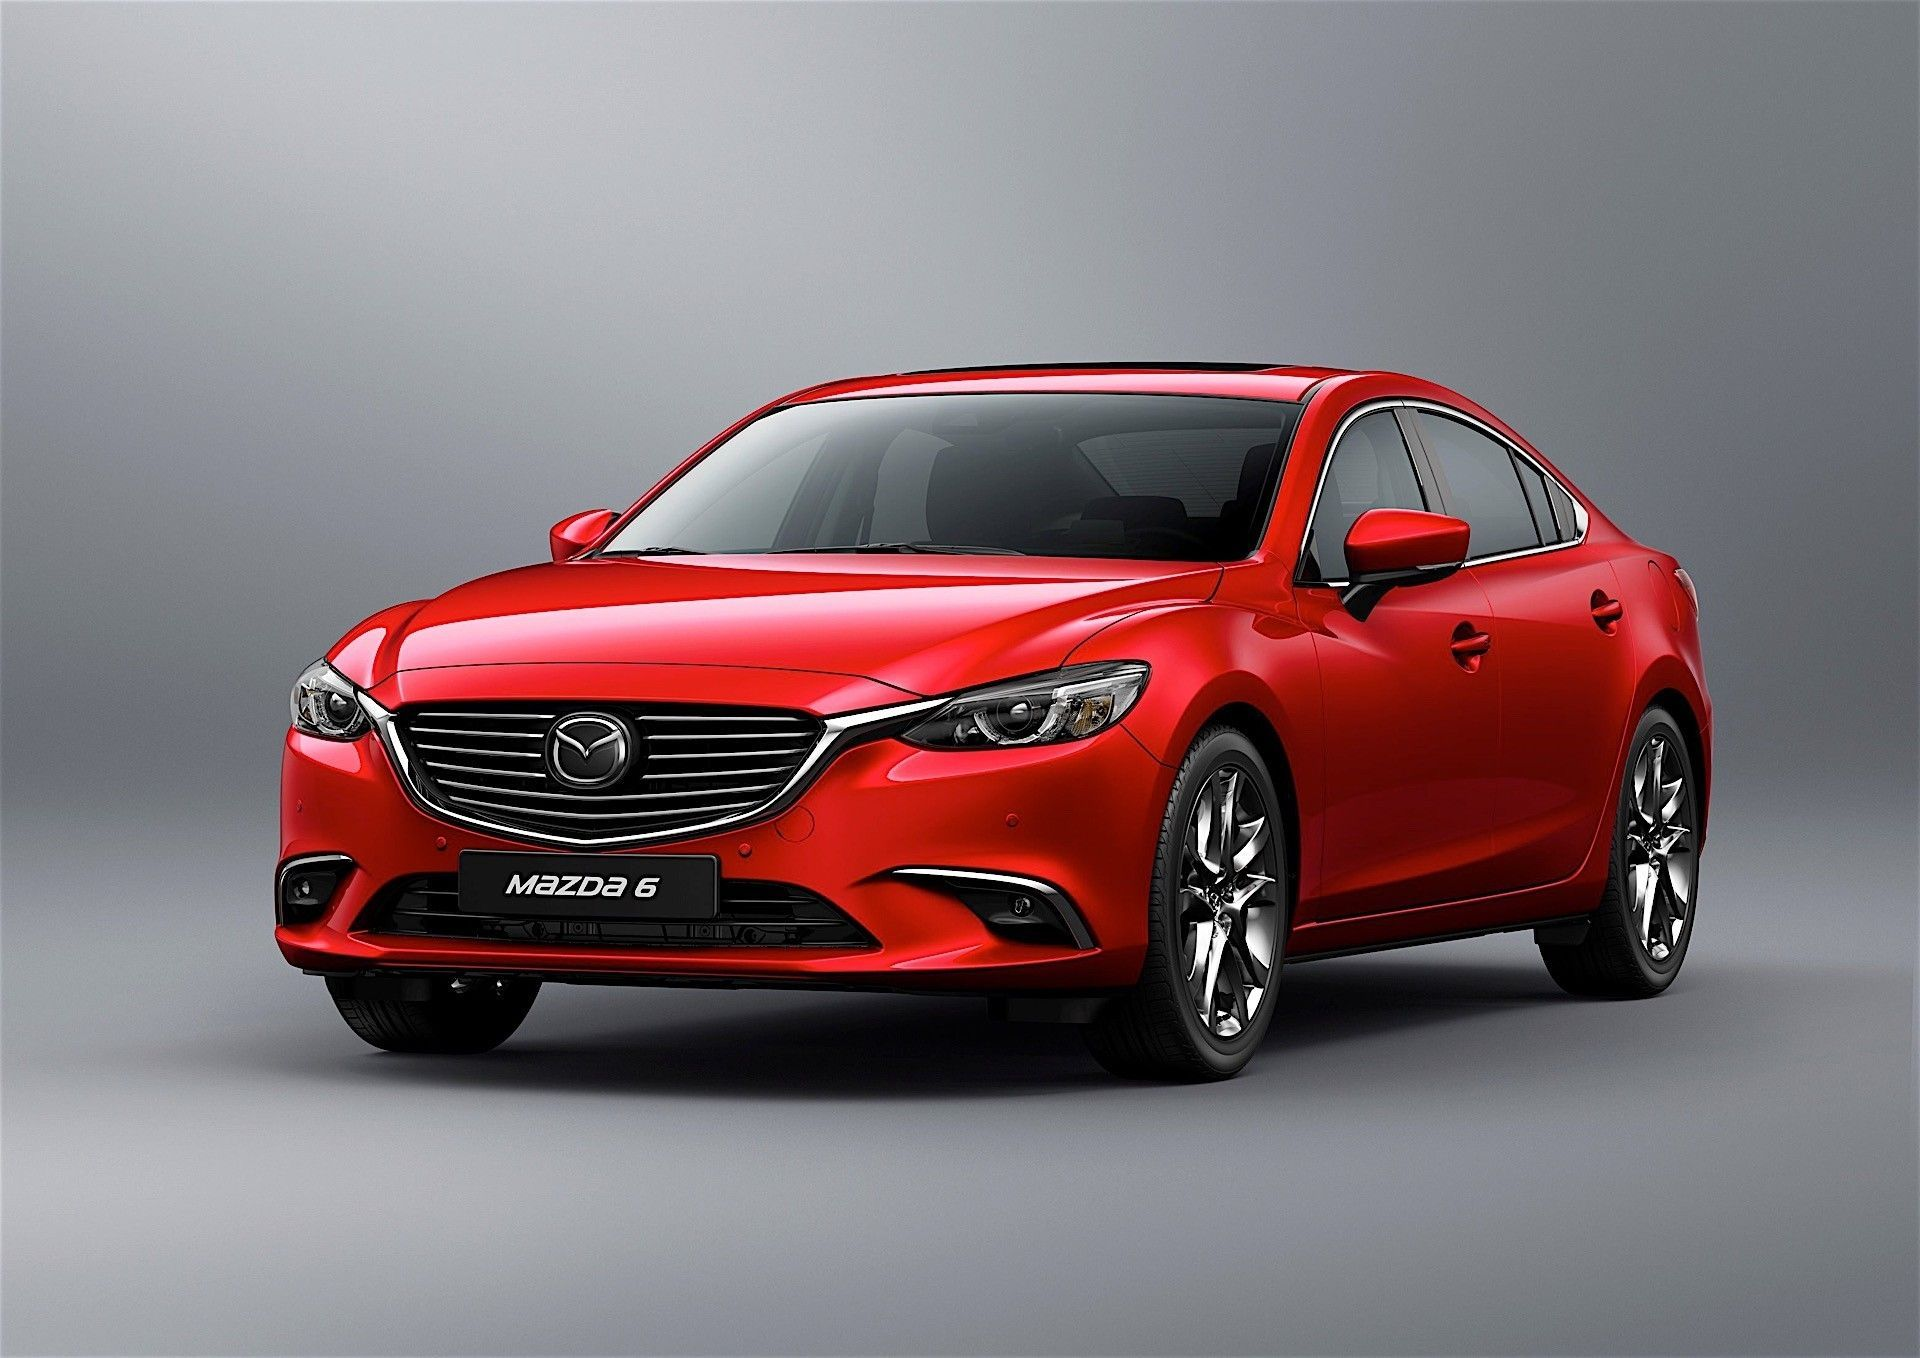 New 2020 Mazda 6s Review and Specs Mazda 6 sedan, Mazda